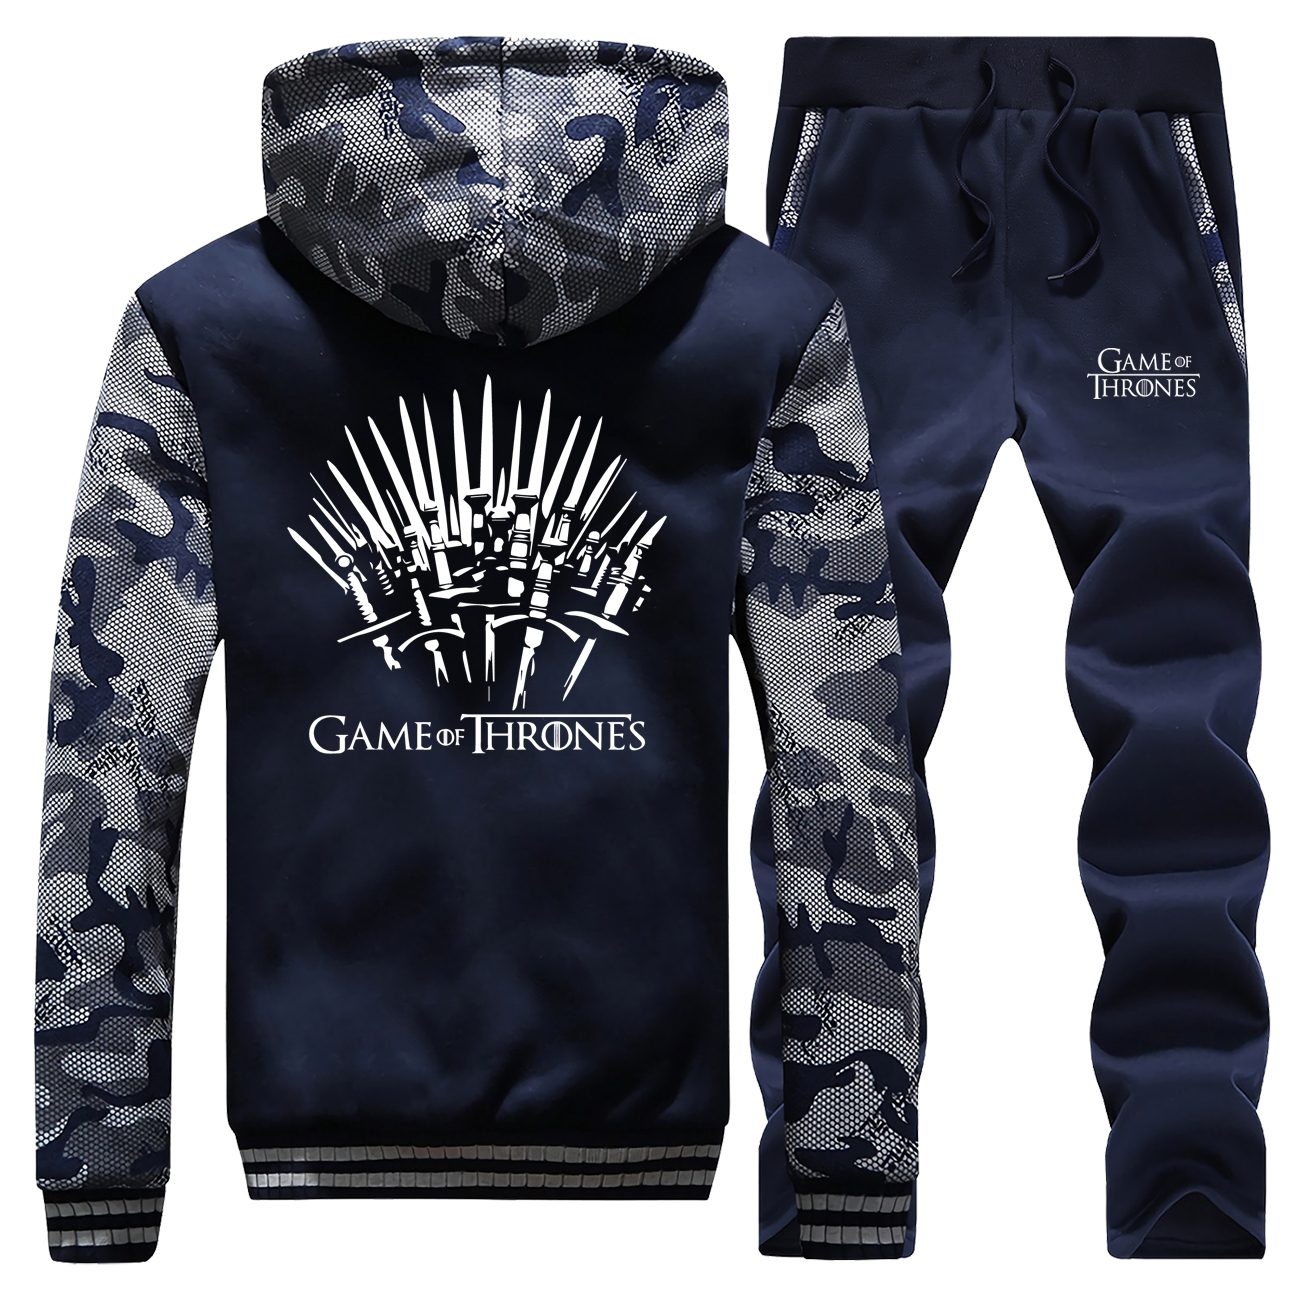 Iron Throne Male Camouflage Set Game Of Thrones Men's Full Suit Tracksuit 2019 Winter Casual Tracksuit Fashion Men's Jogging